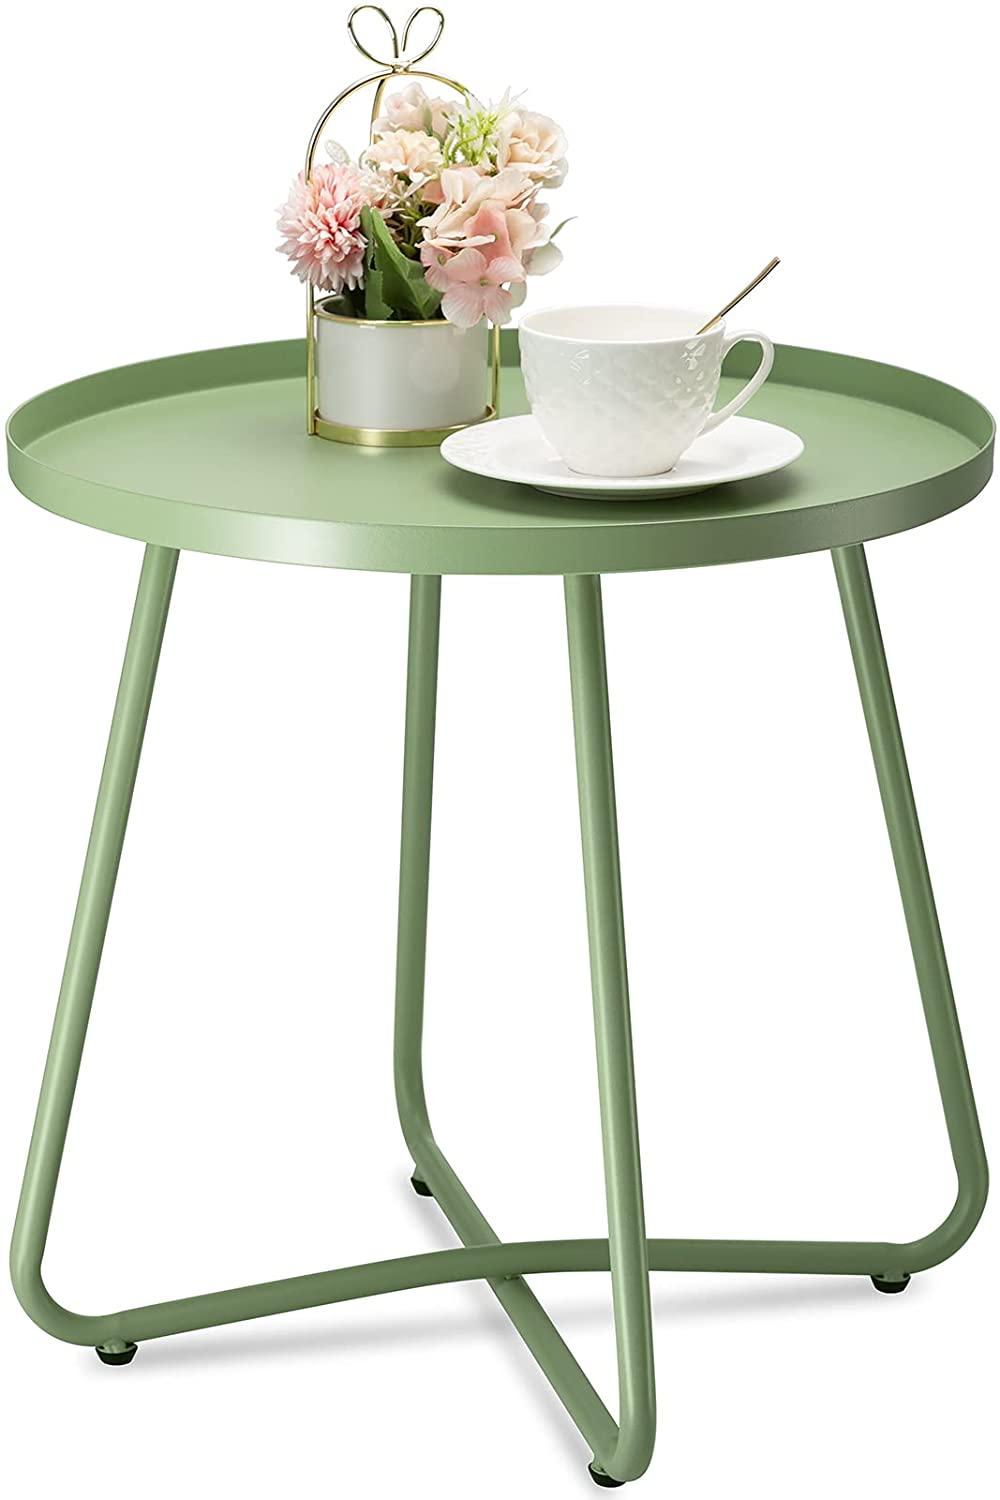 danpinera Outdoor Side Tables, Weather Resistant Steel Patio Side Table, Small Round Outdoor End Table Metal Side Table for Patio Yard Balcony Garden Bedside Green